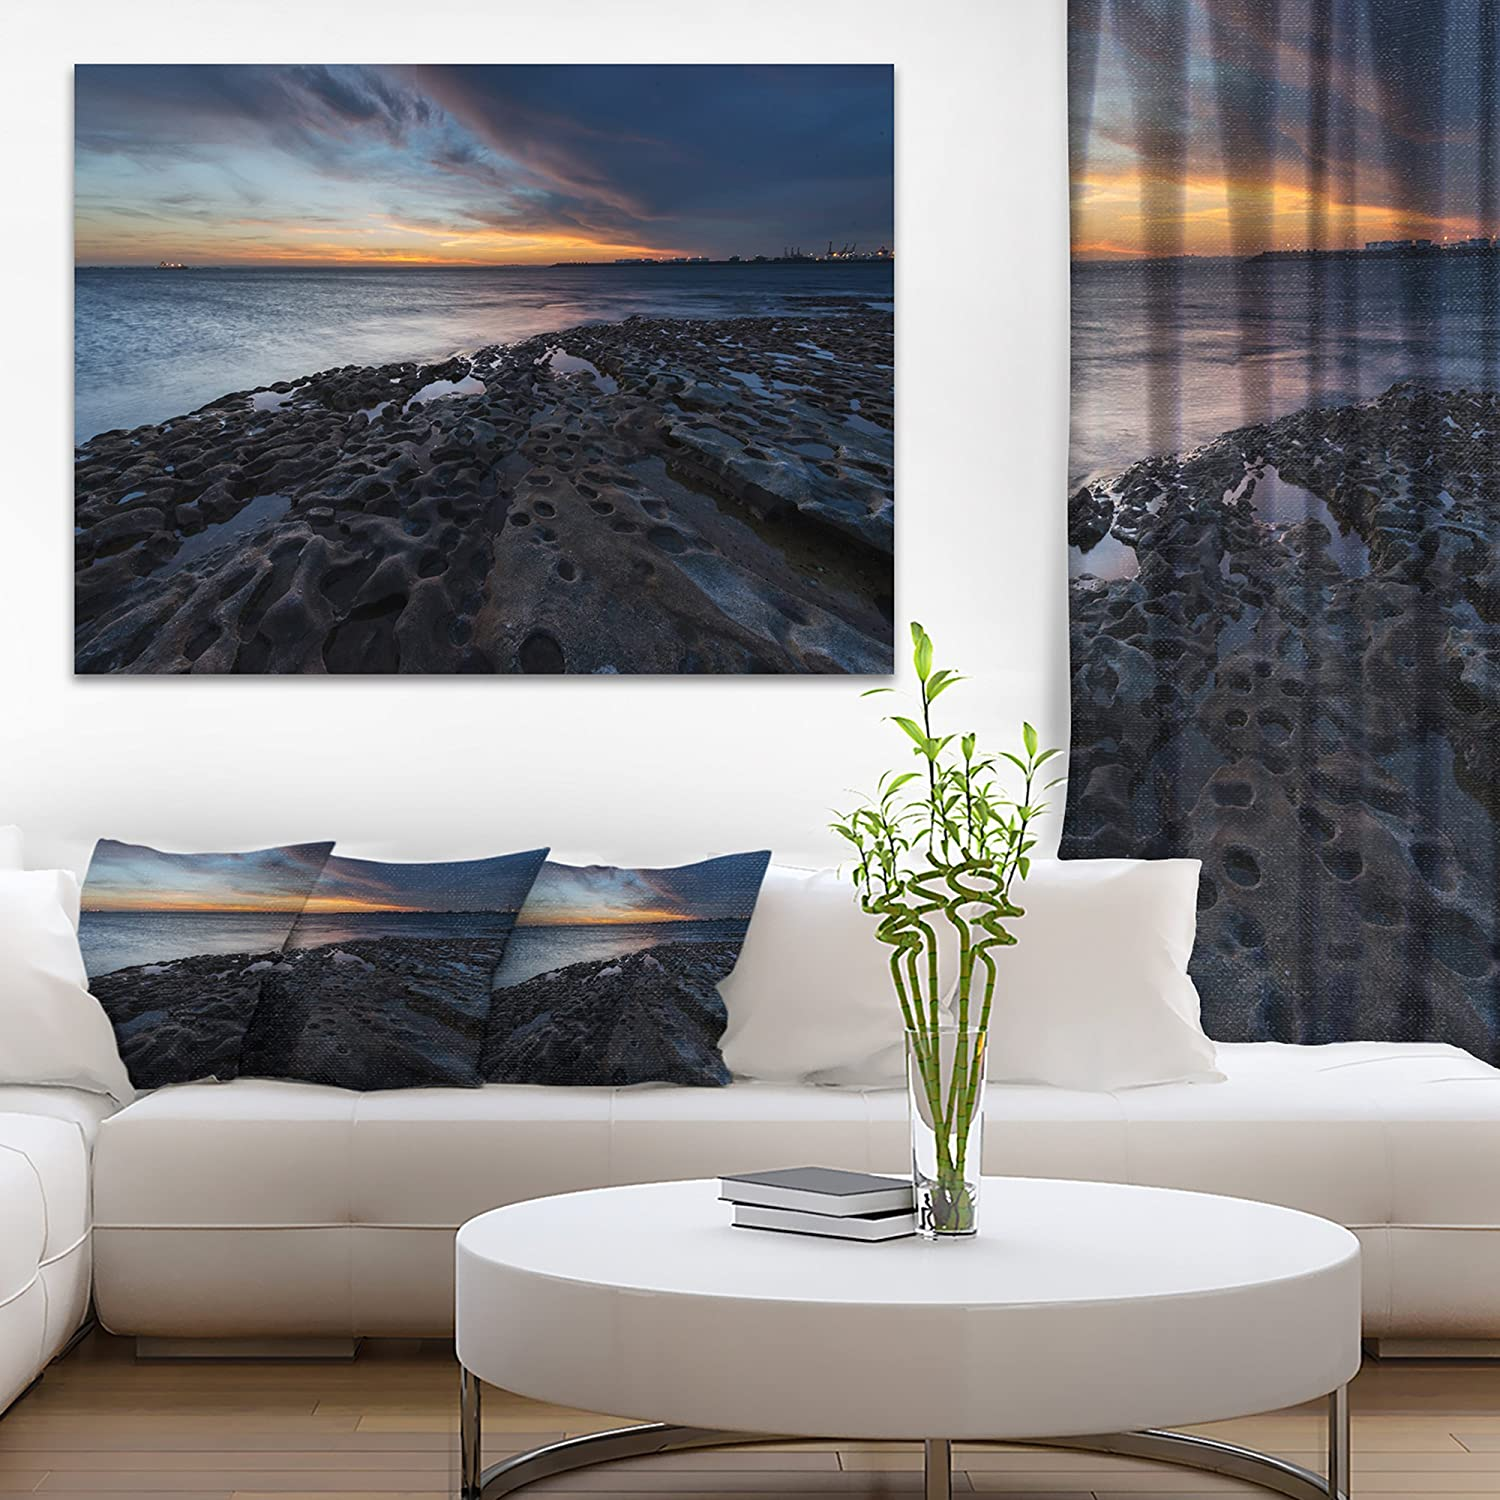 Amazon Com Designart Pt9851 20 12 La Perouse Beach Sydney Seashore Canvas Wall Artwork 12 H X 20 W X 1 D 1p Blue Wall Art